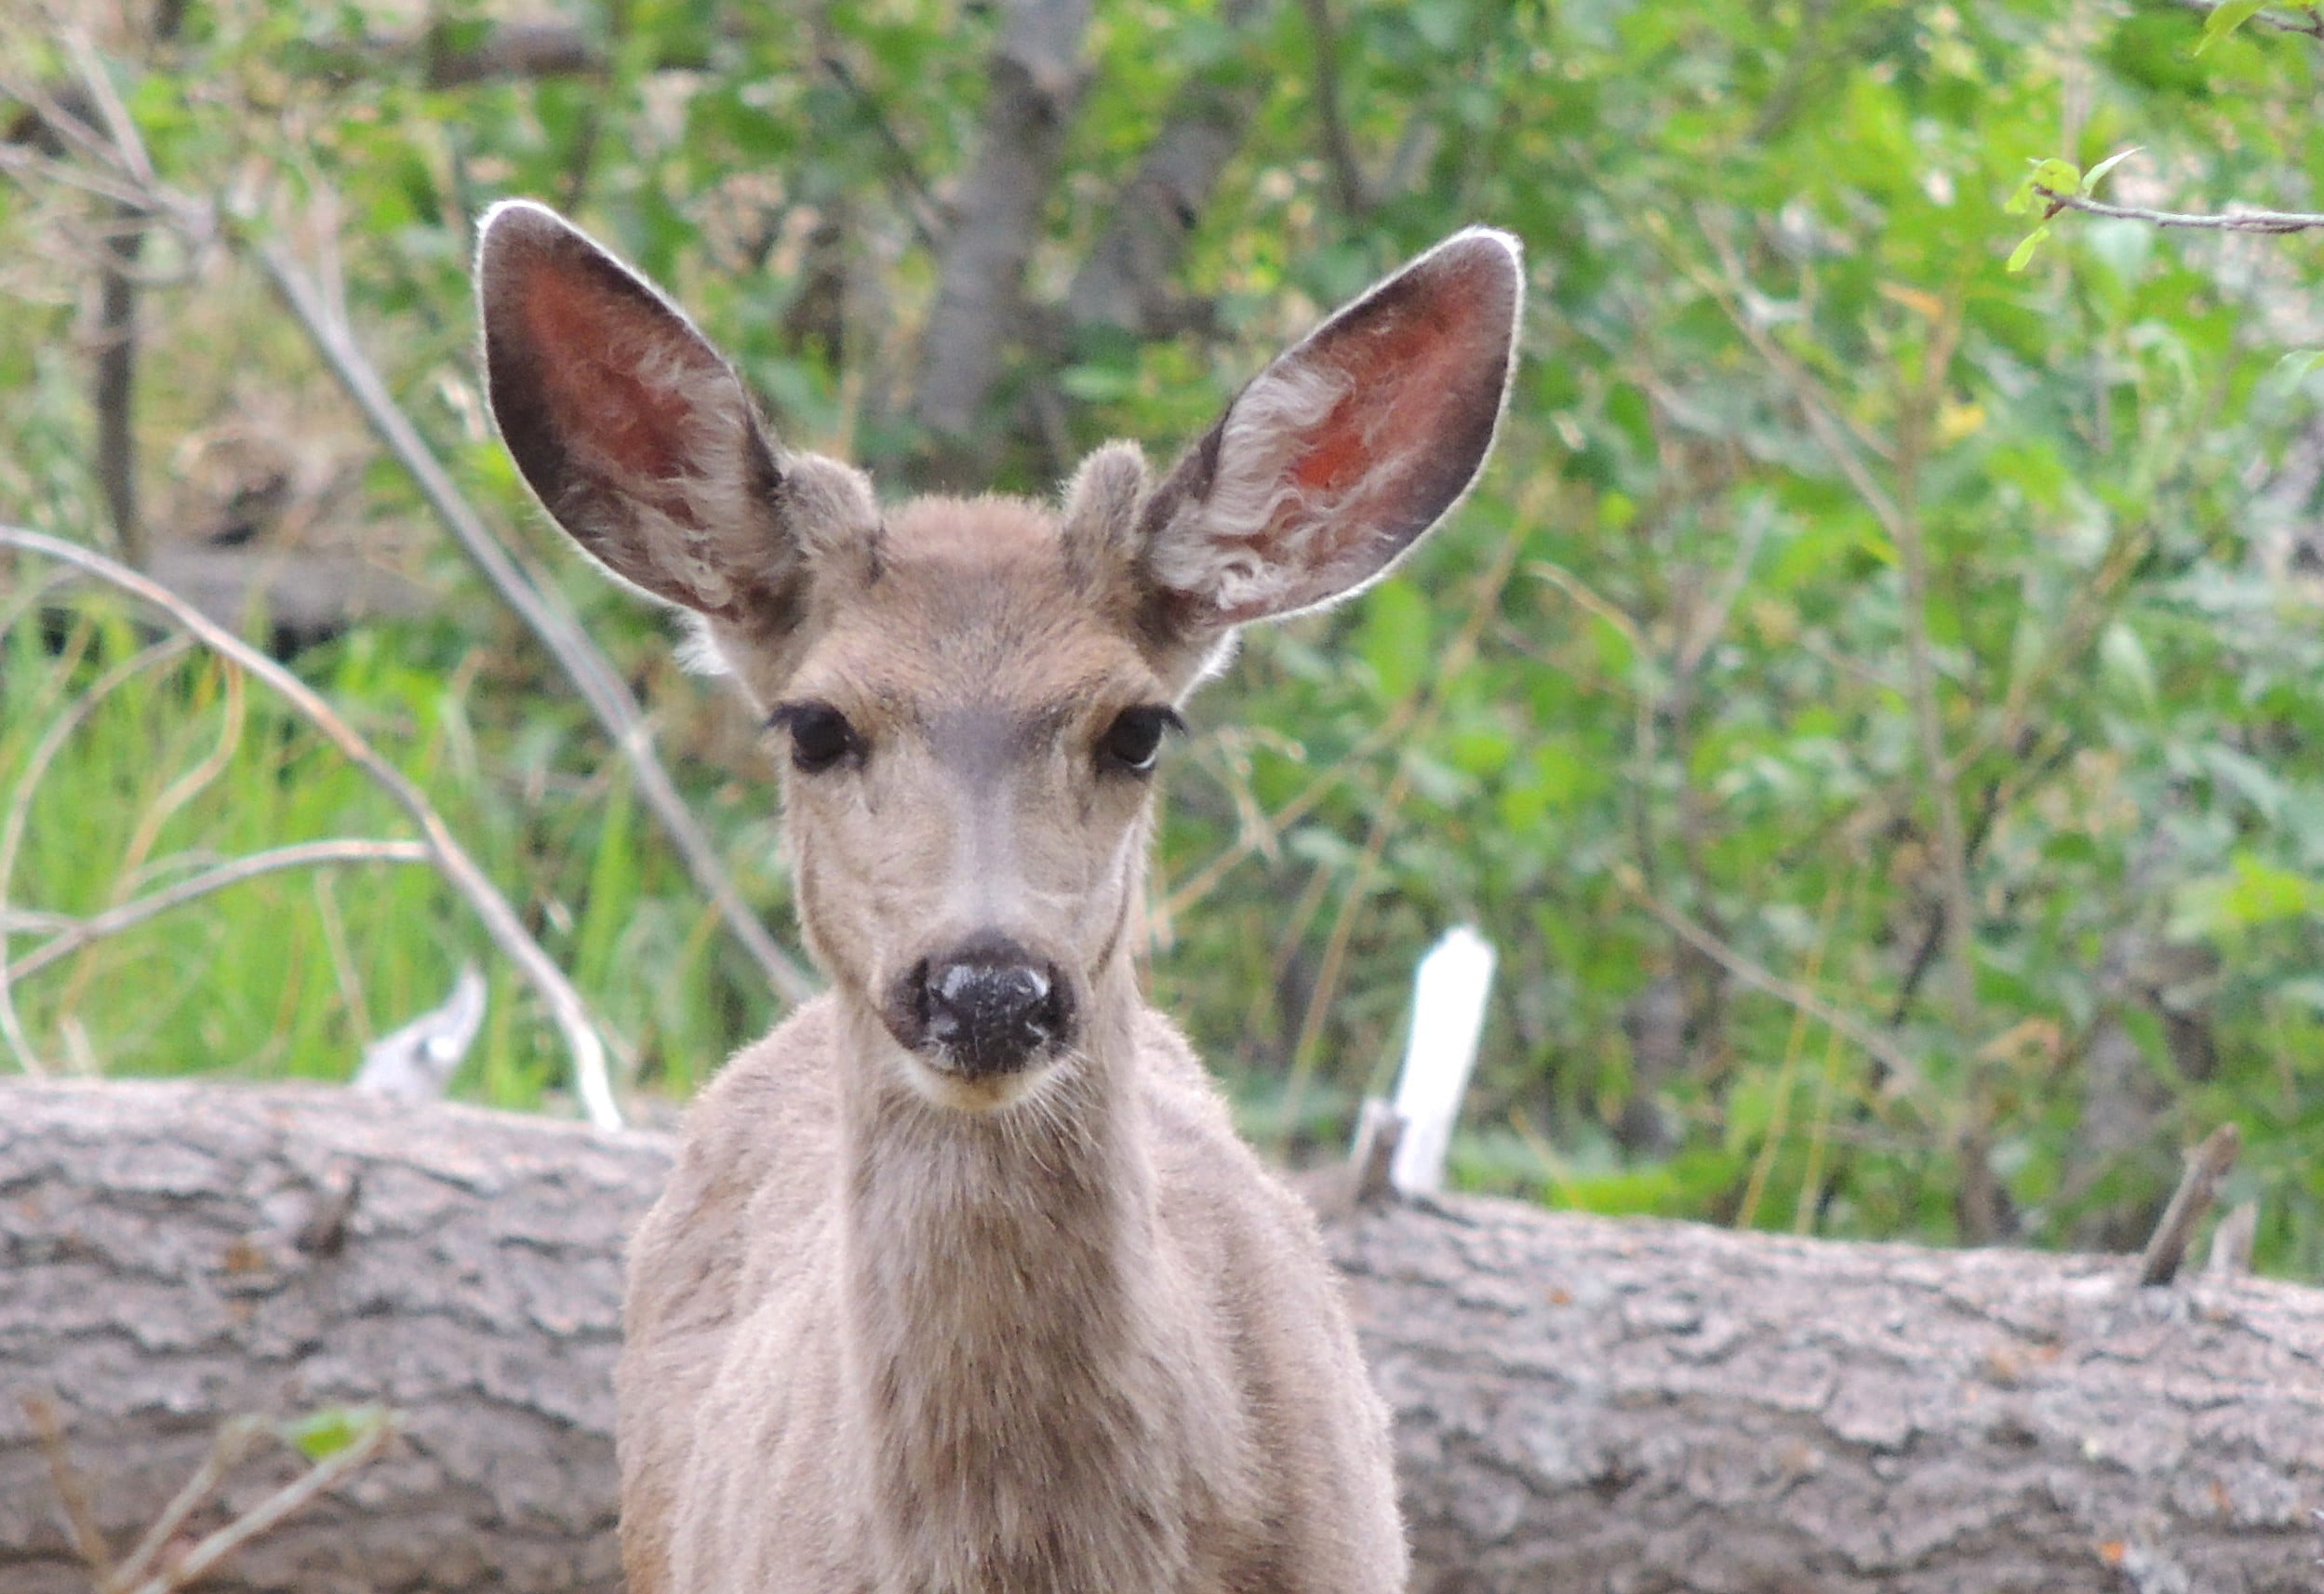 Wild Things: Mule deer (Odocoileus hemionus)